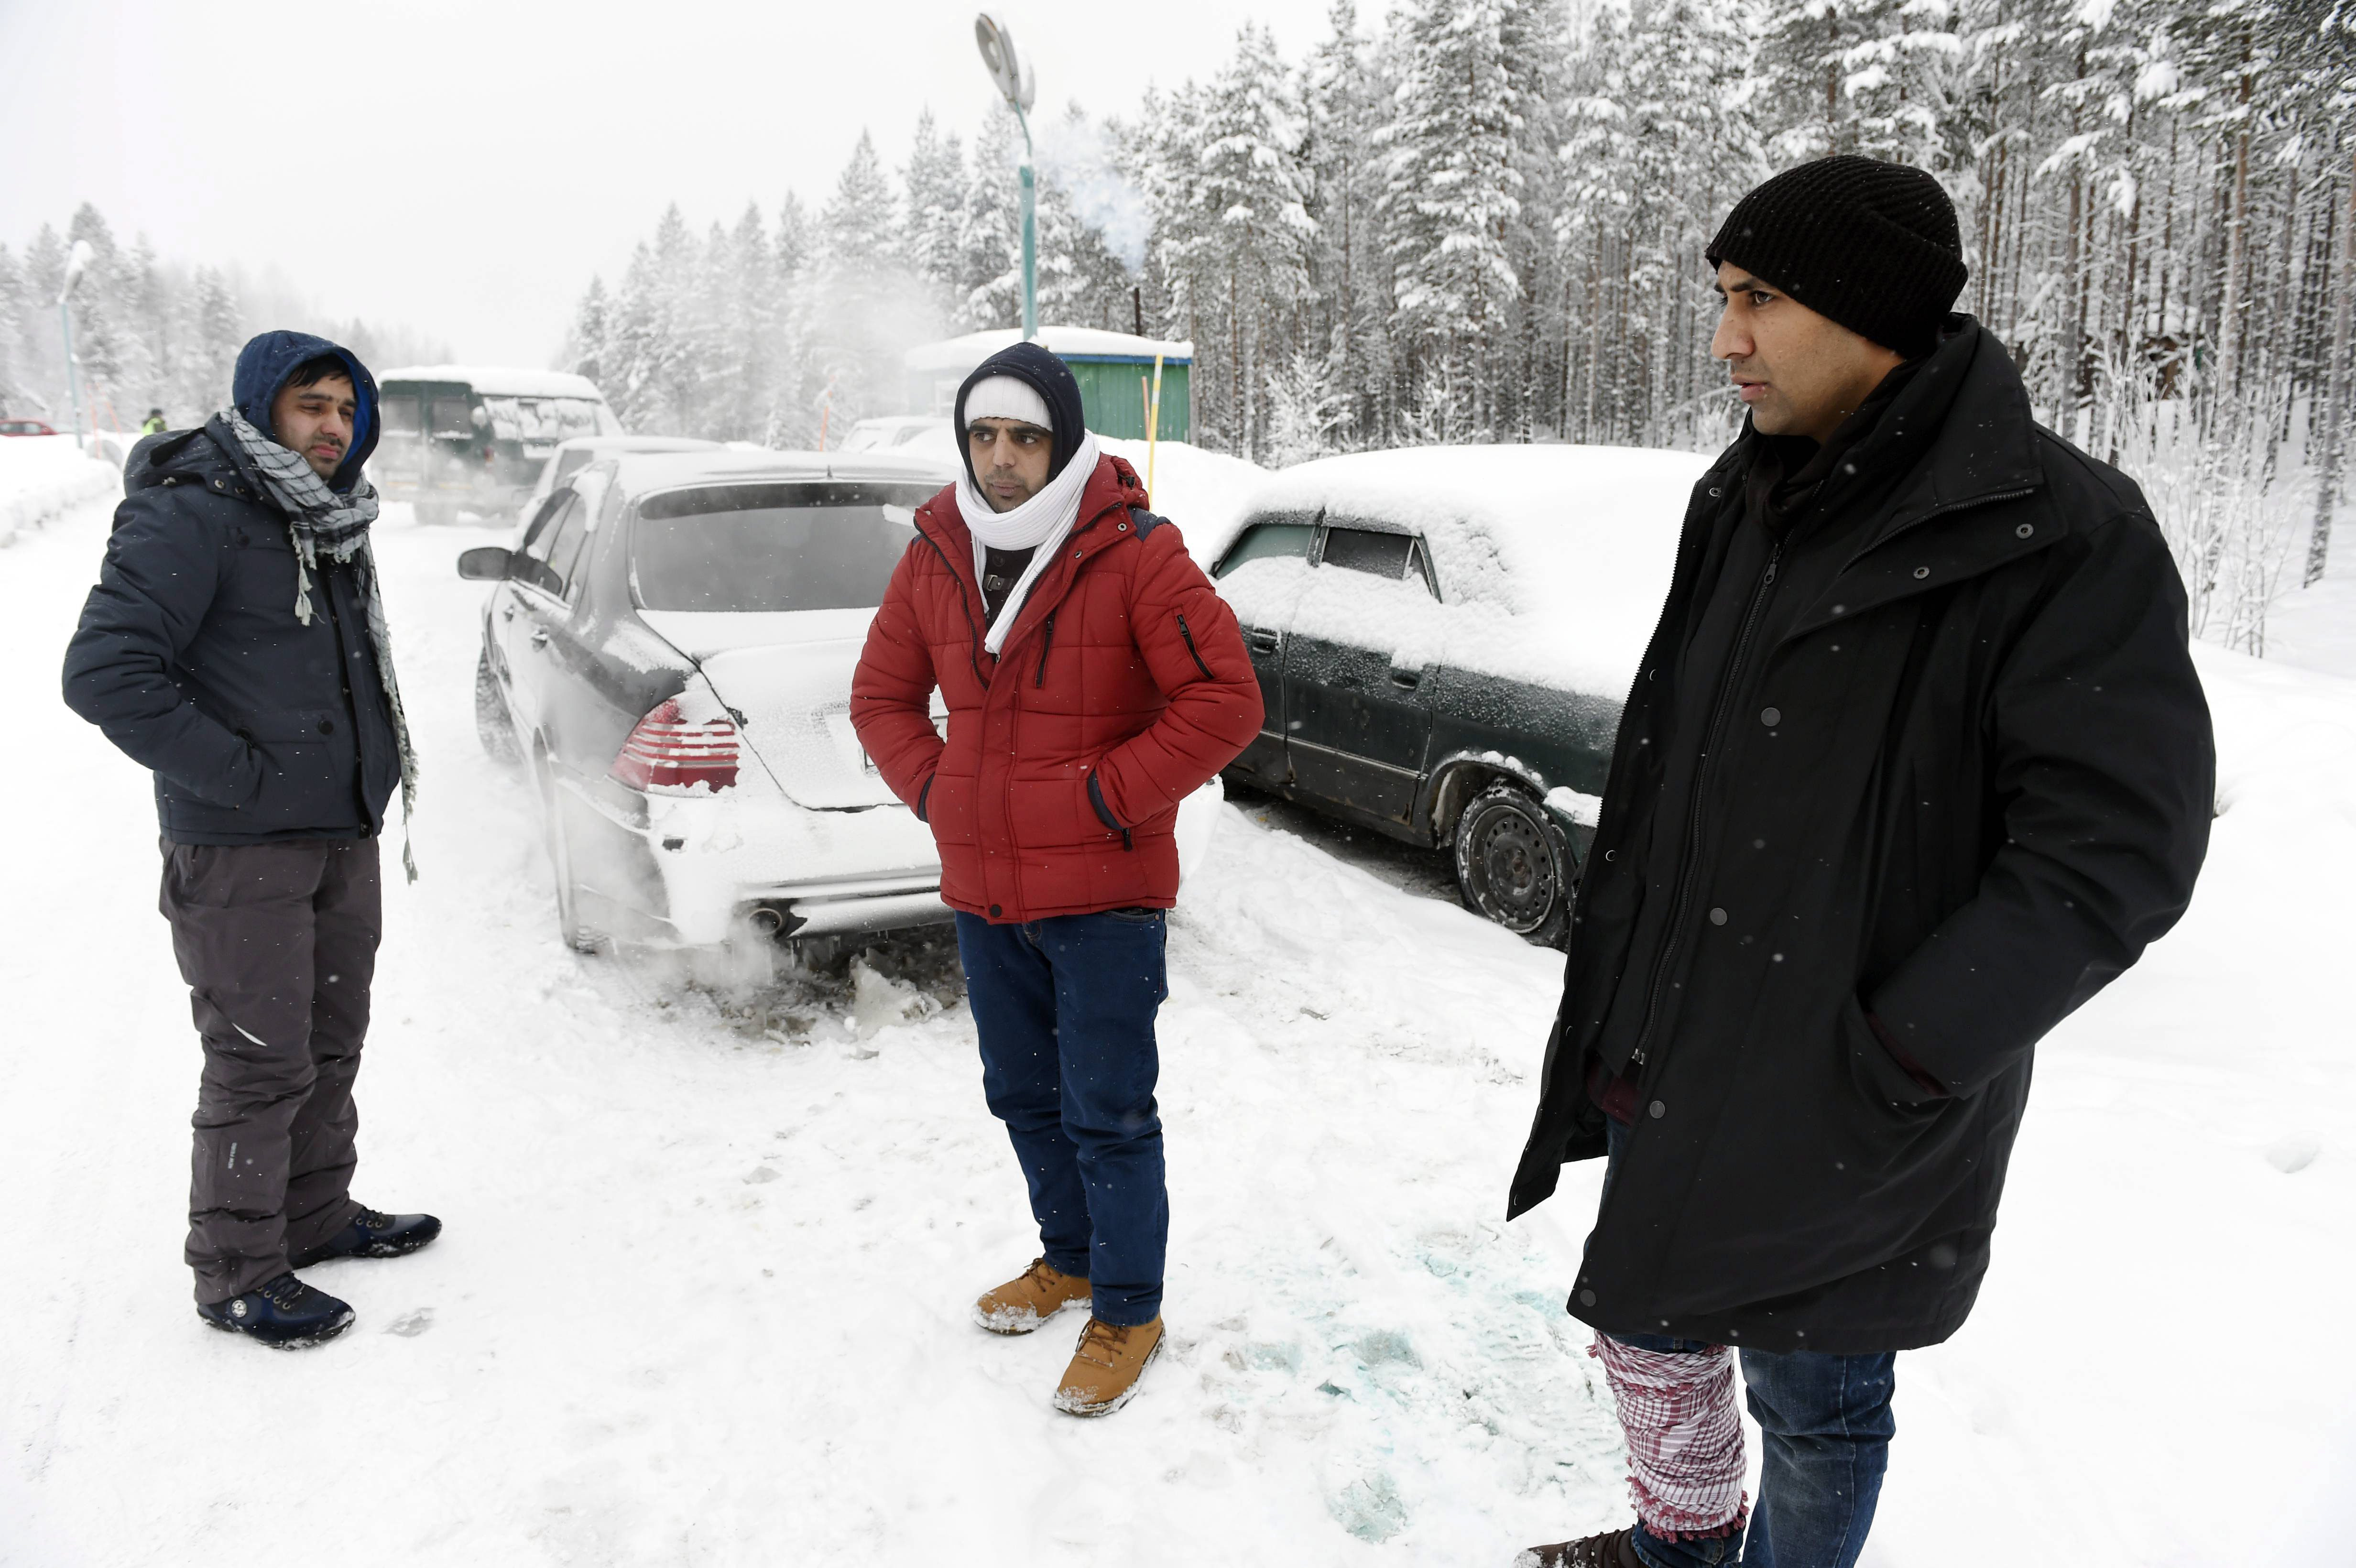 Asylum seekers Rahmatullah, left, and Nazirulhag, center, from Afghanistan and Fida Hussain from Pakistan wait on the Russian side of the border on Jan. 23, 2016